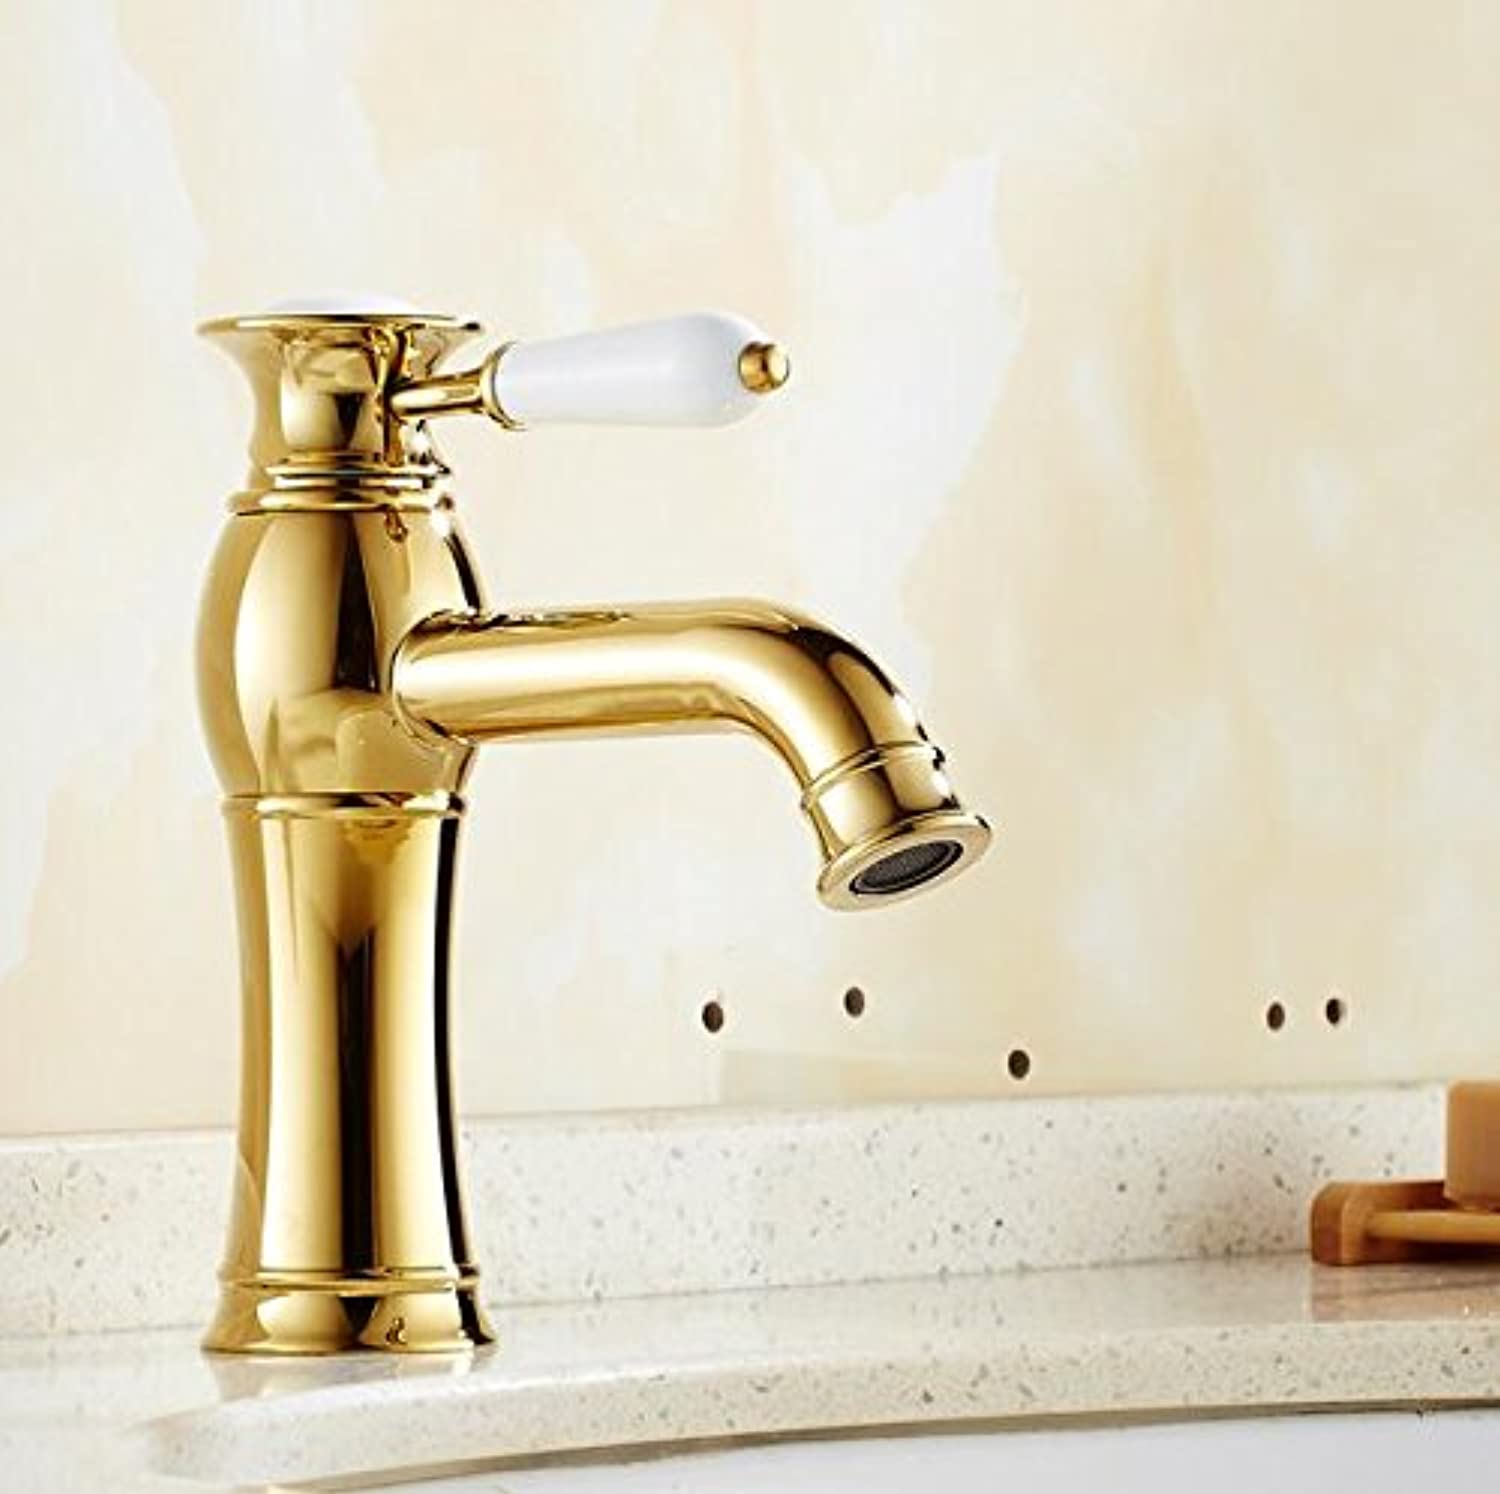 Makej golden Polished Bathroom Basin Faucet Mixer Tap Hot and Cold Mixer Brass Faucet for Basin Sink Tap